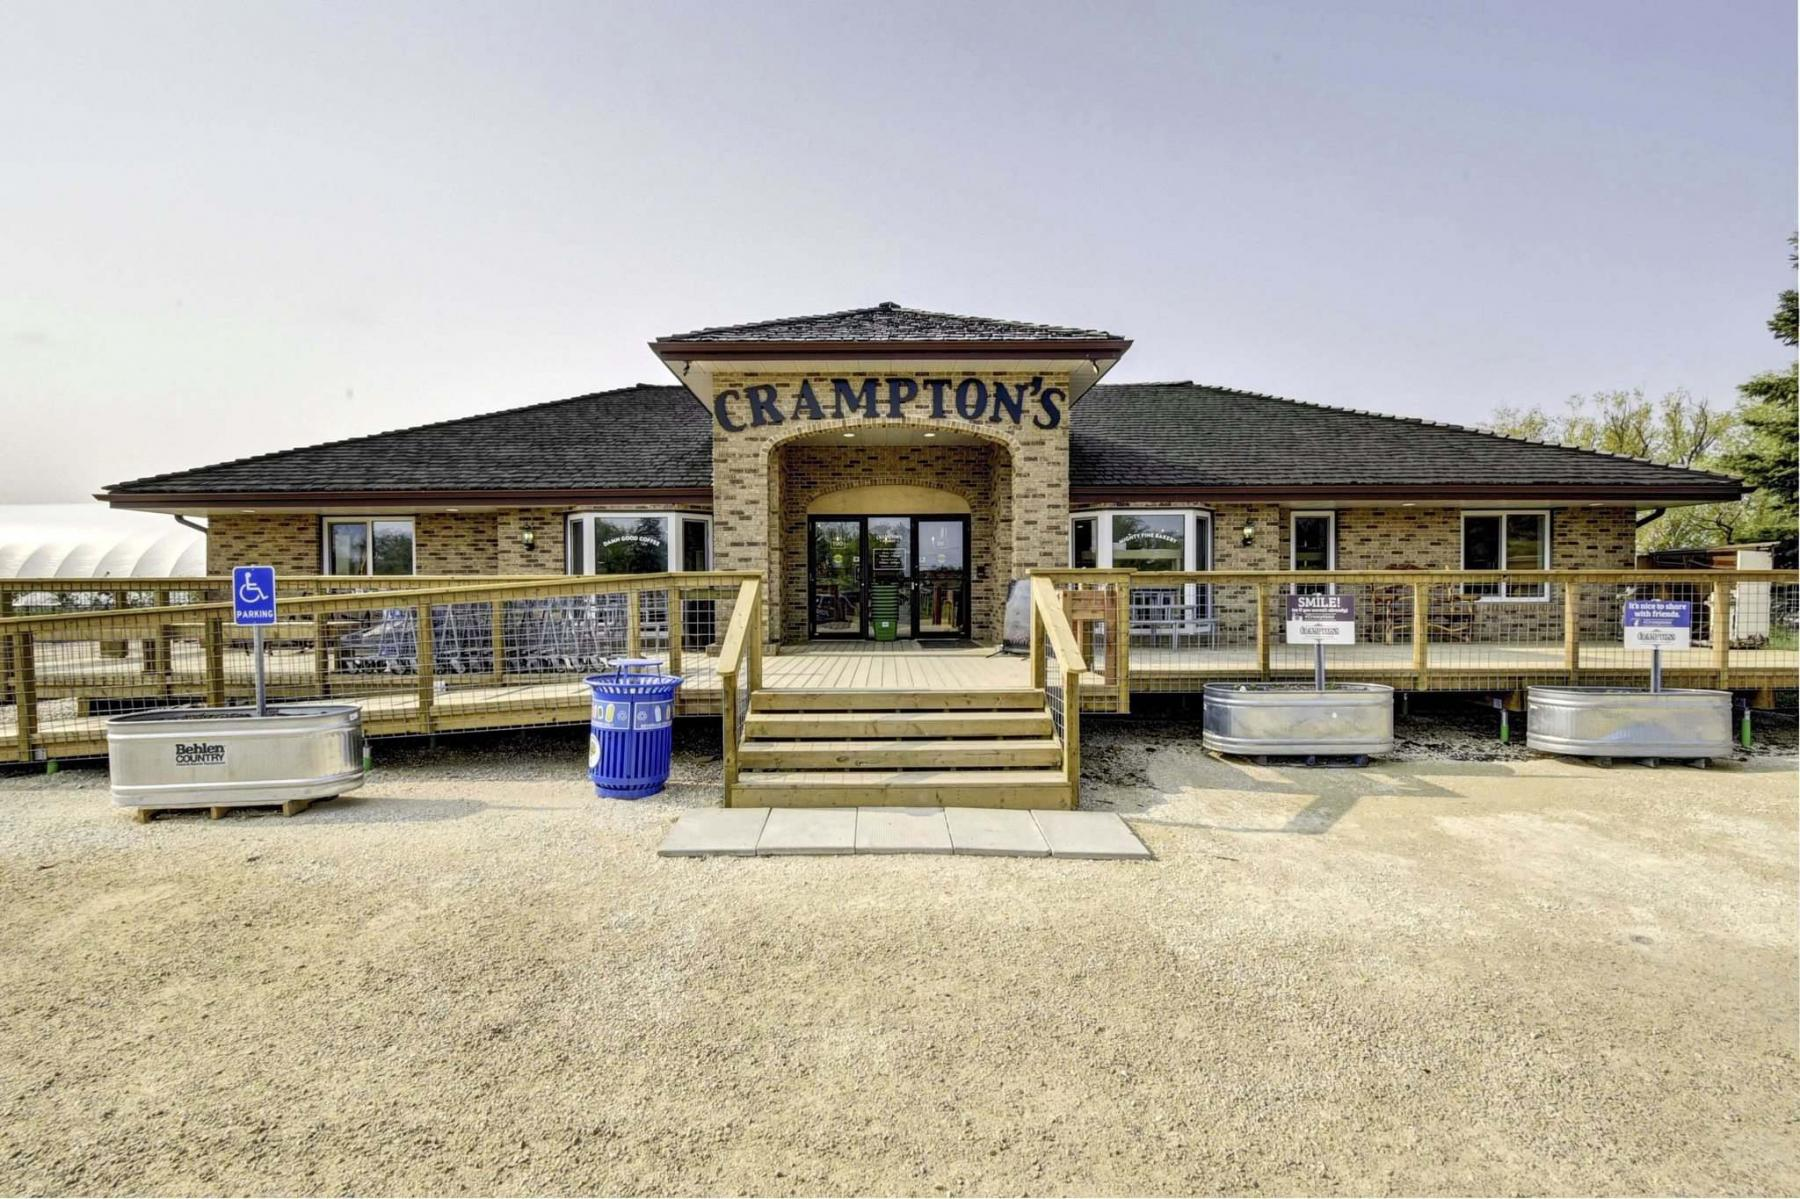 <p>JARRETT DAVIDSON PHOTO</p><p>Crampton's Market, now owned by T & T Seeds, is now open year-round.</p>